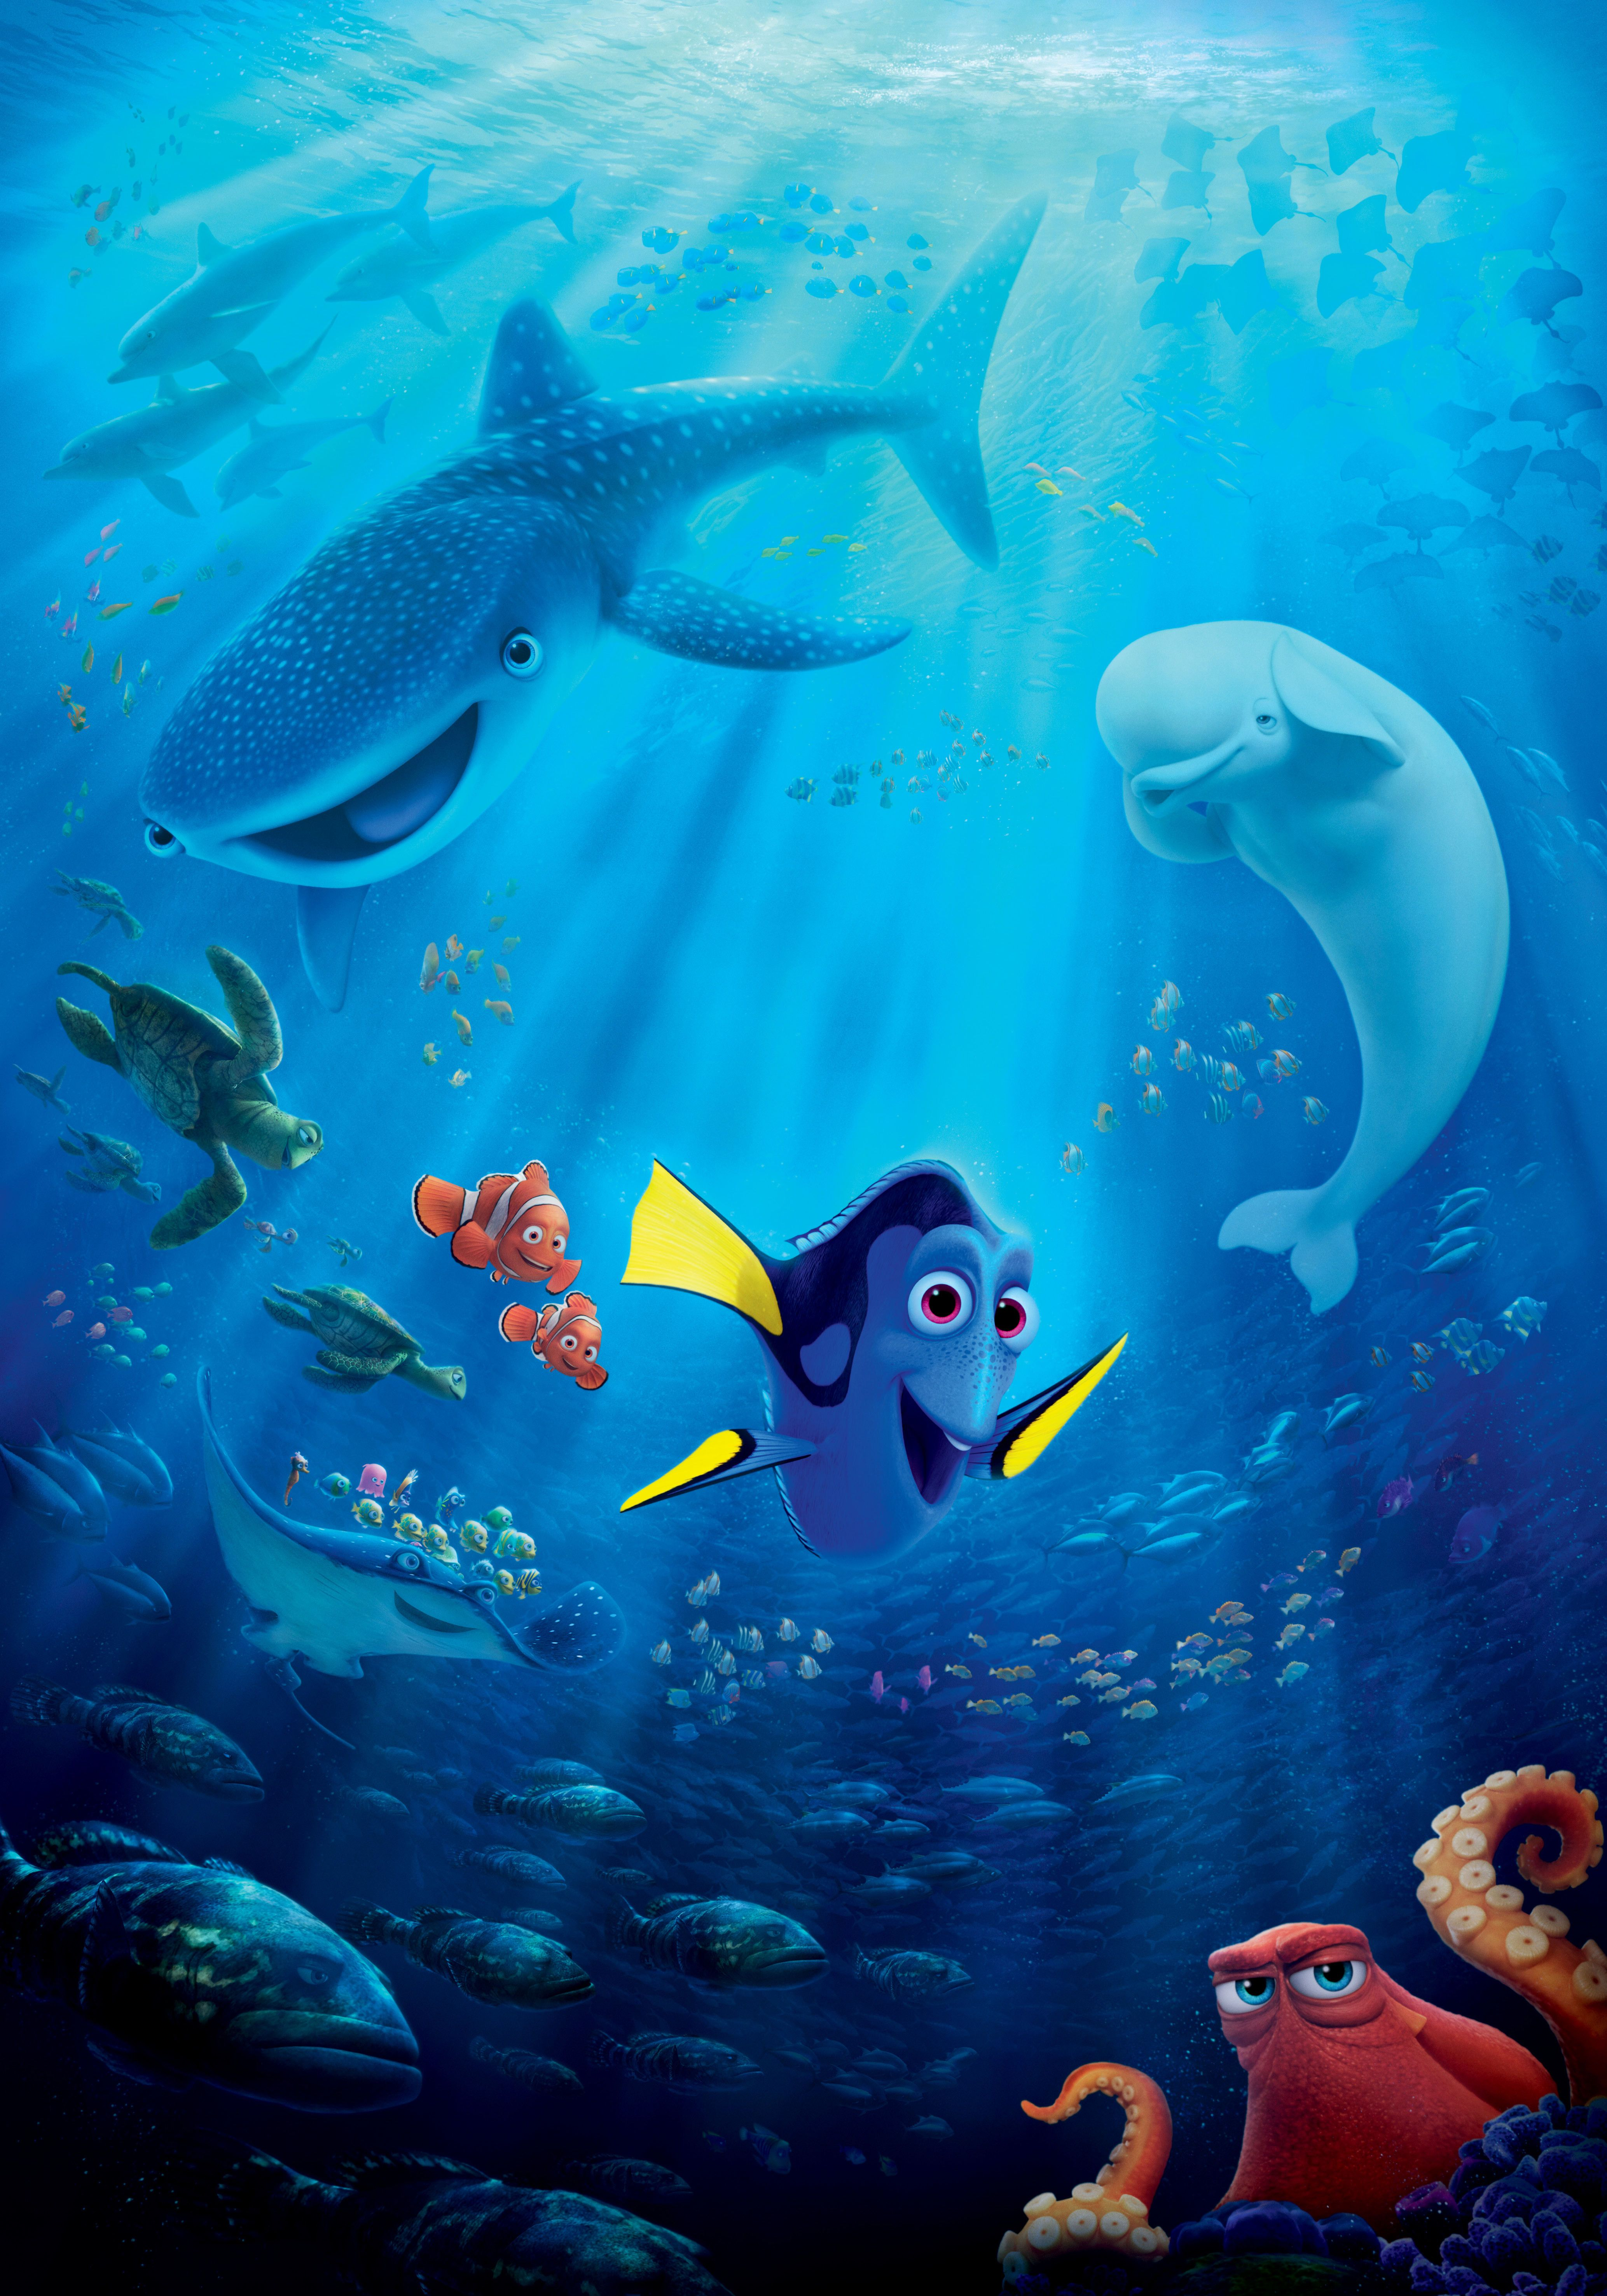 Finding Dory | Pixar shorts, Feature film and Finding nemo